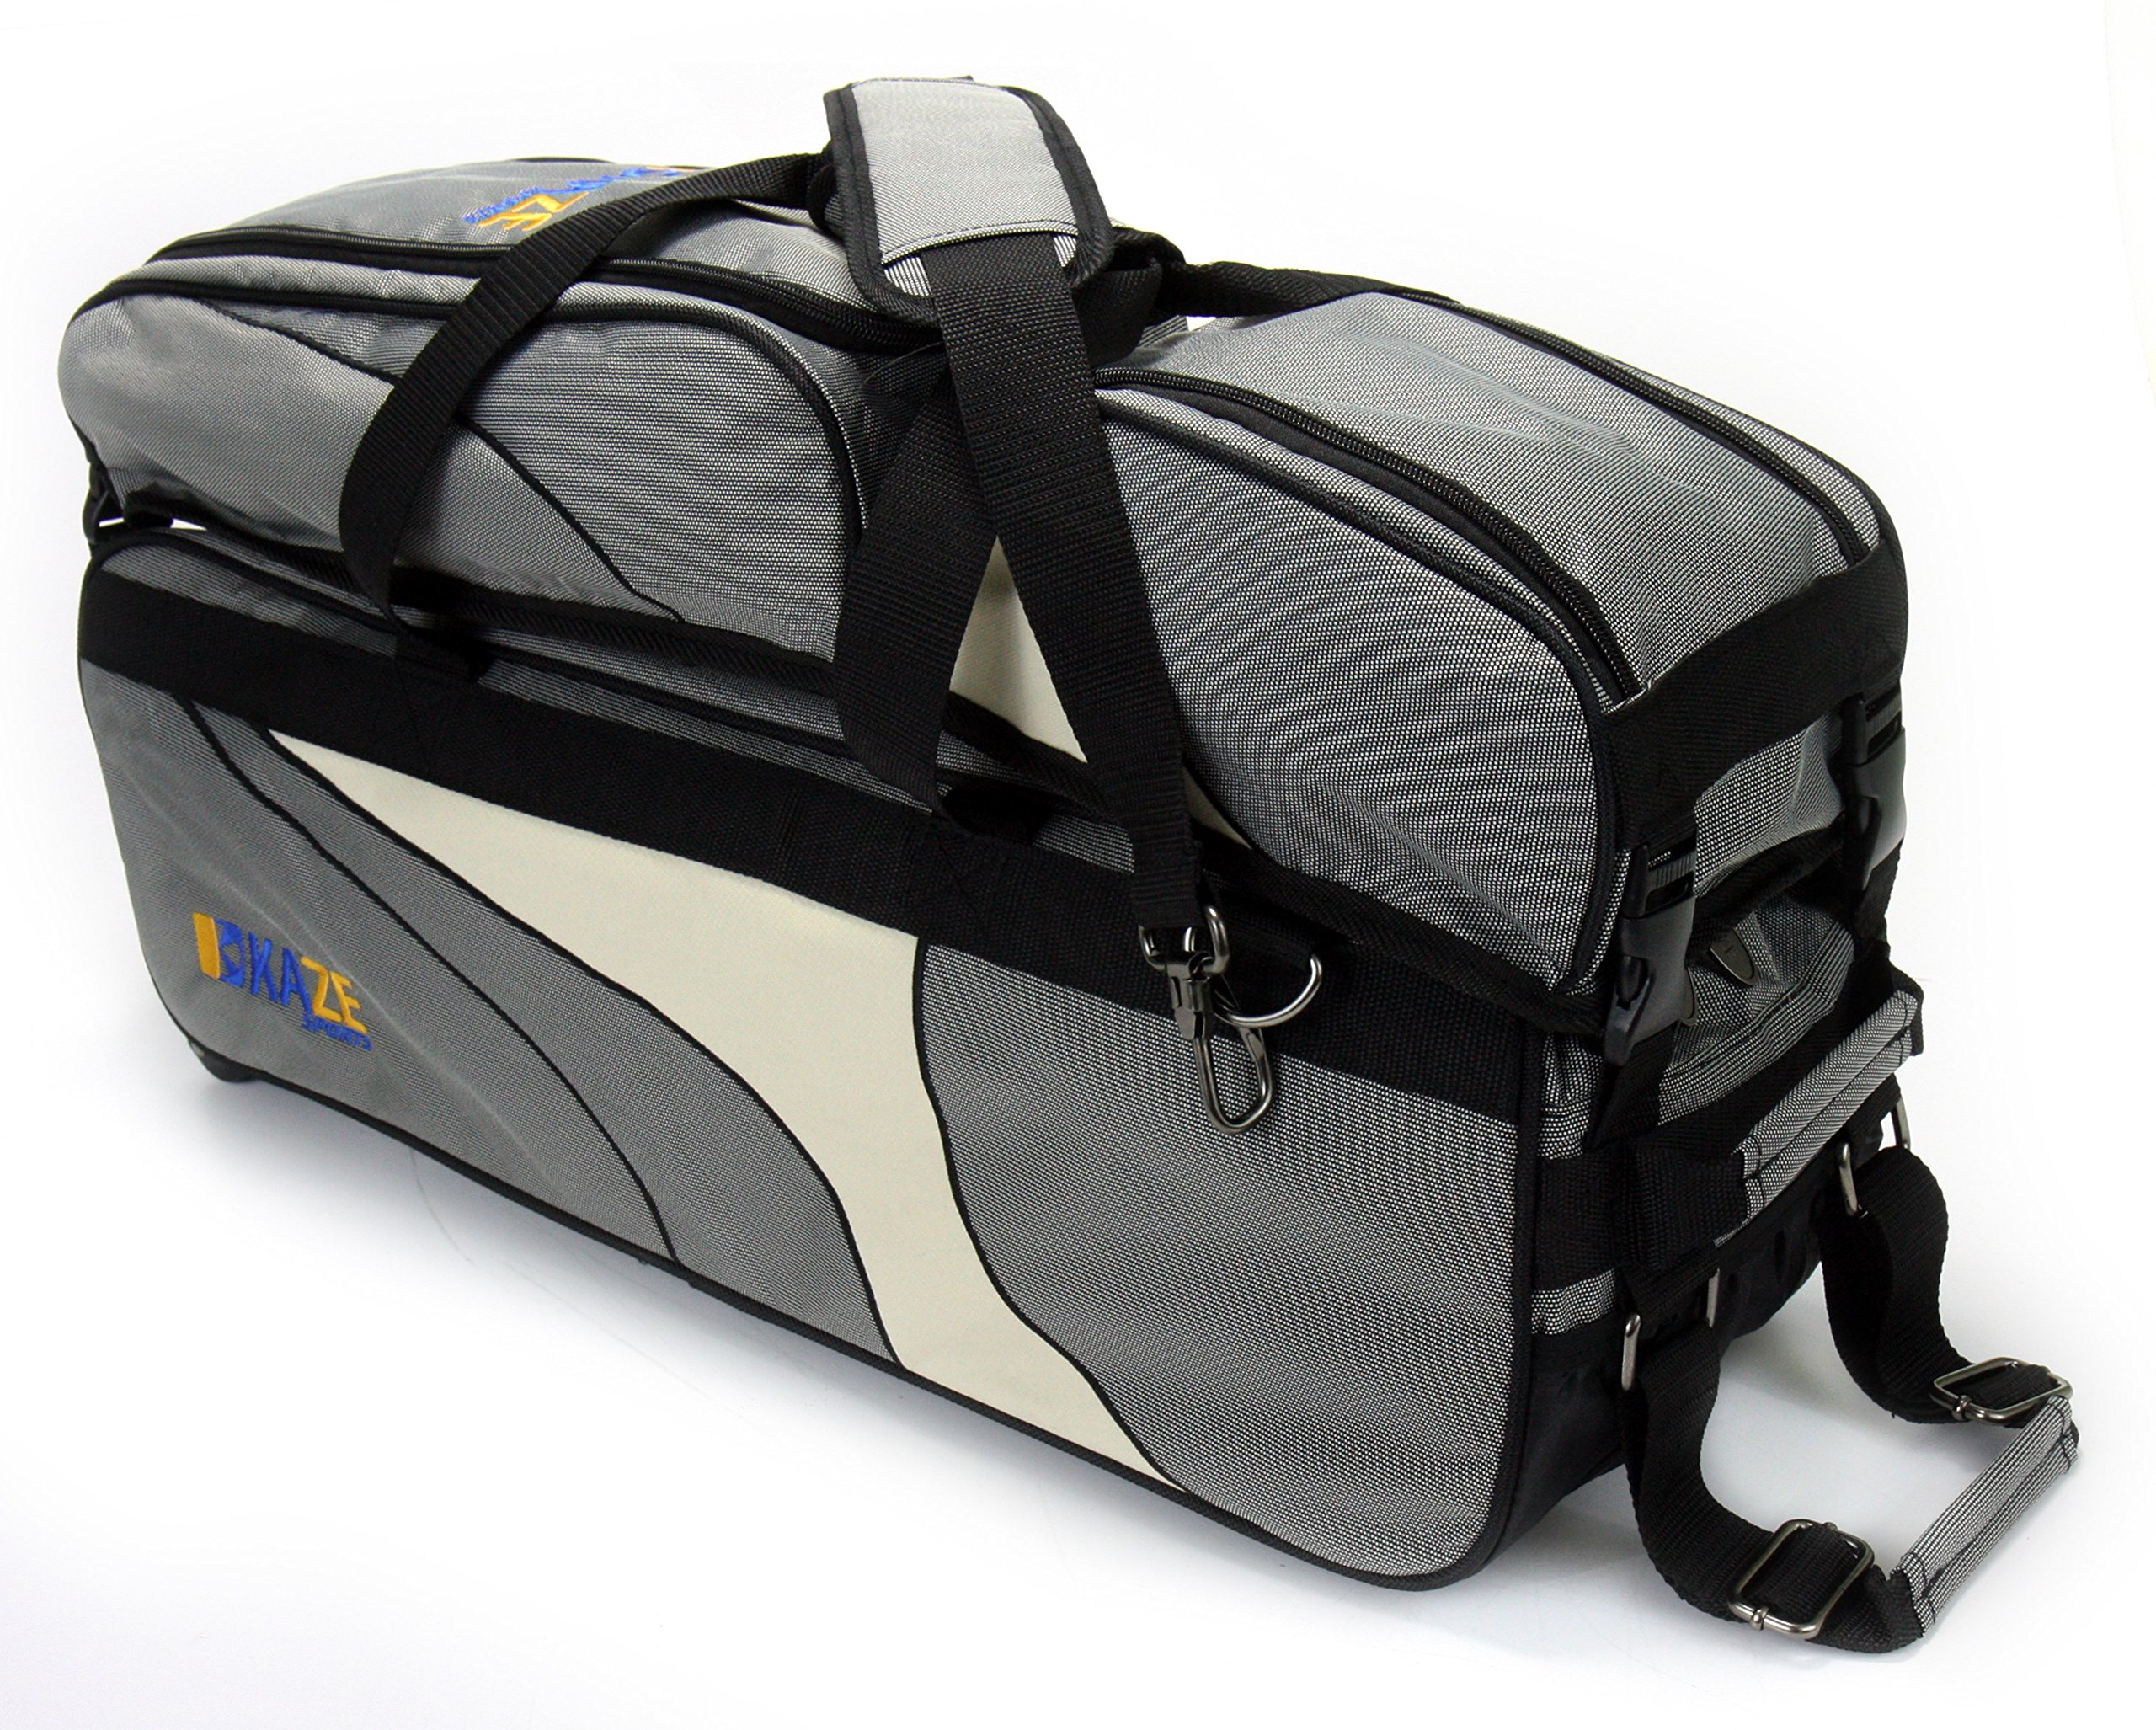 KAZE SPORTS 3 Ball Deluxe Bowling Tournament Roller Tote with Detachable Shoe & Accessory Bag, Gray